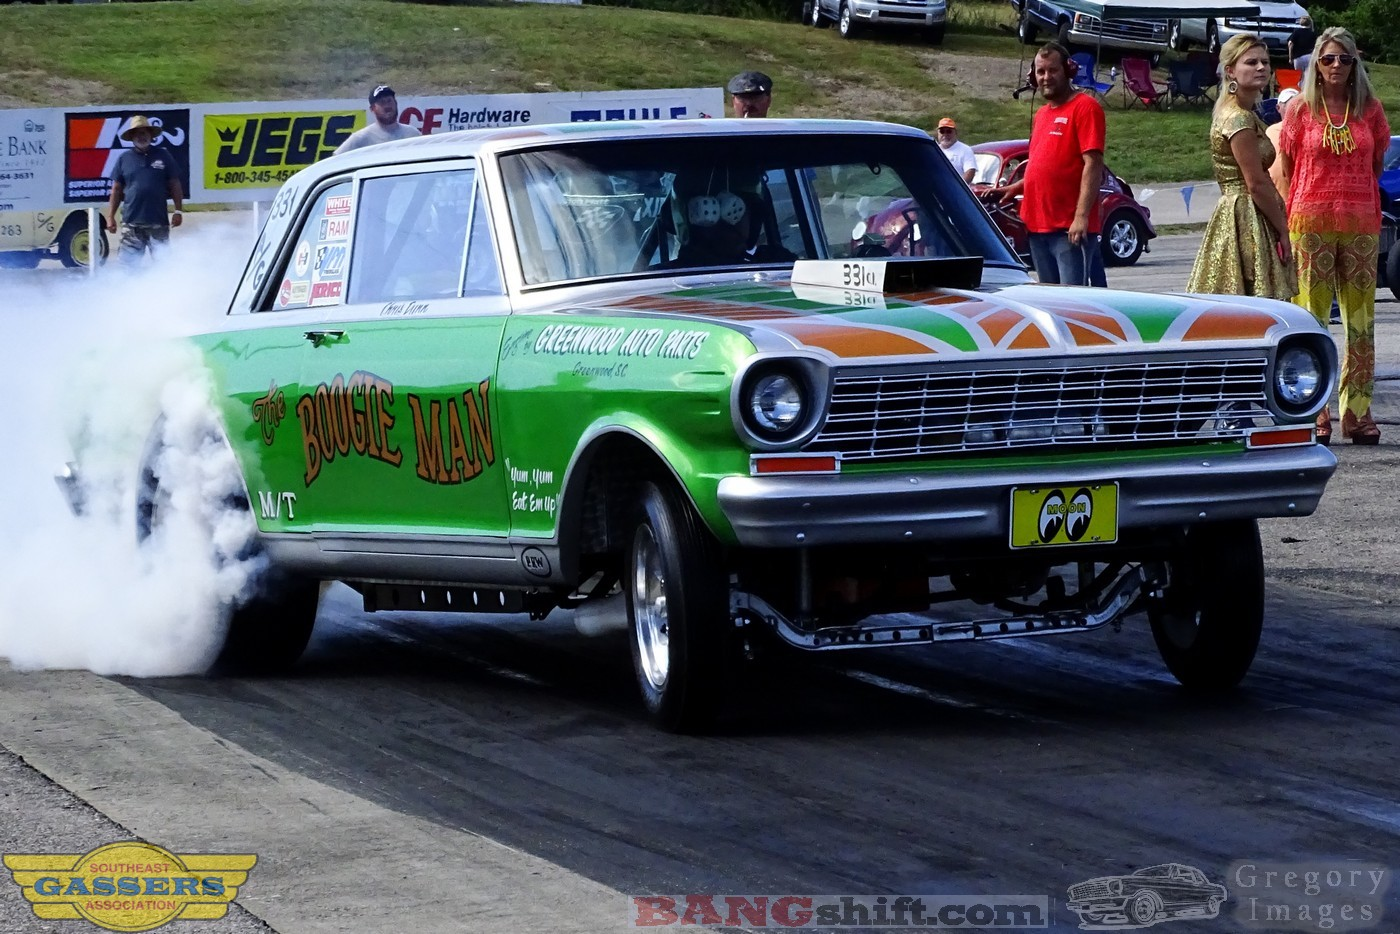 Southeast Gassers Racing Gallery: Mountain Park Dragway Was Nuts!